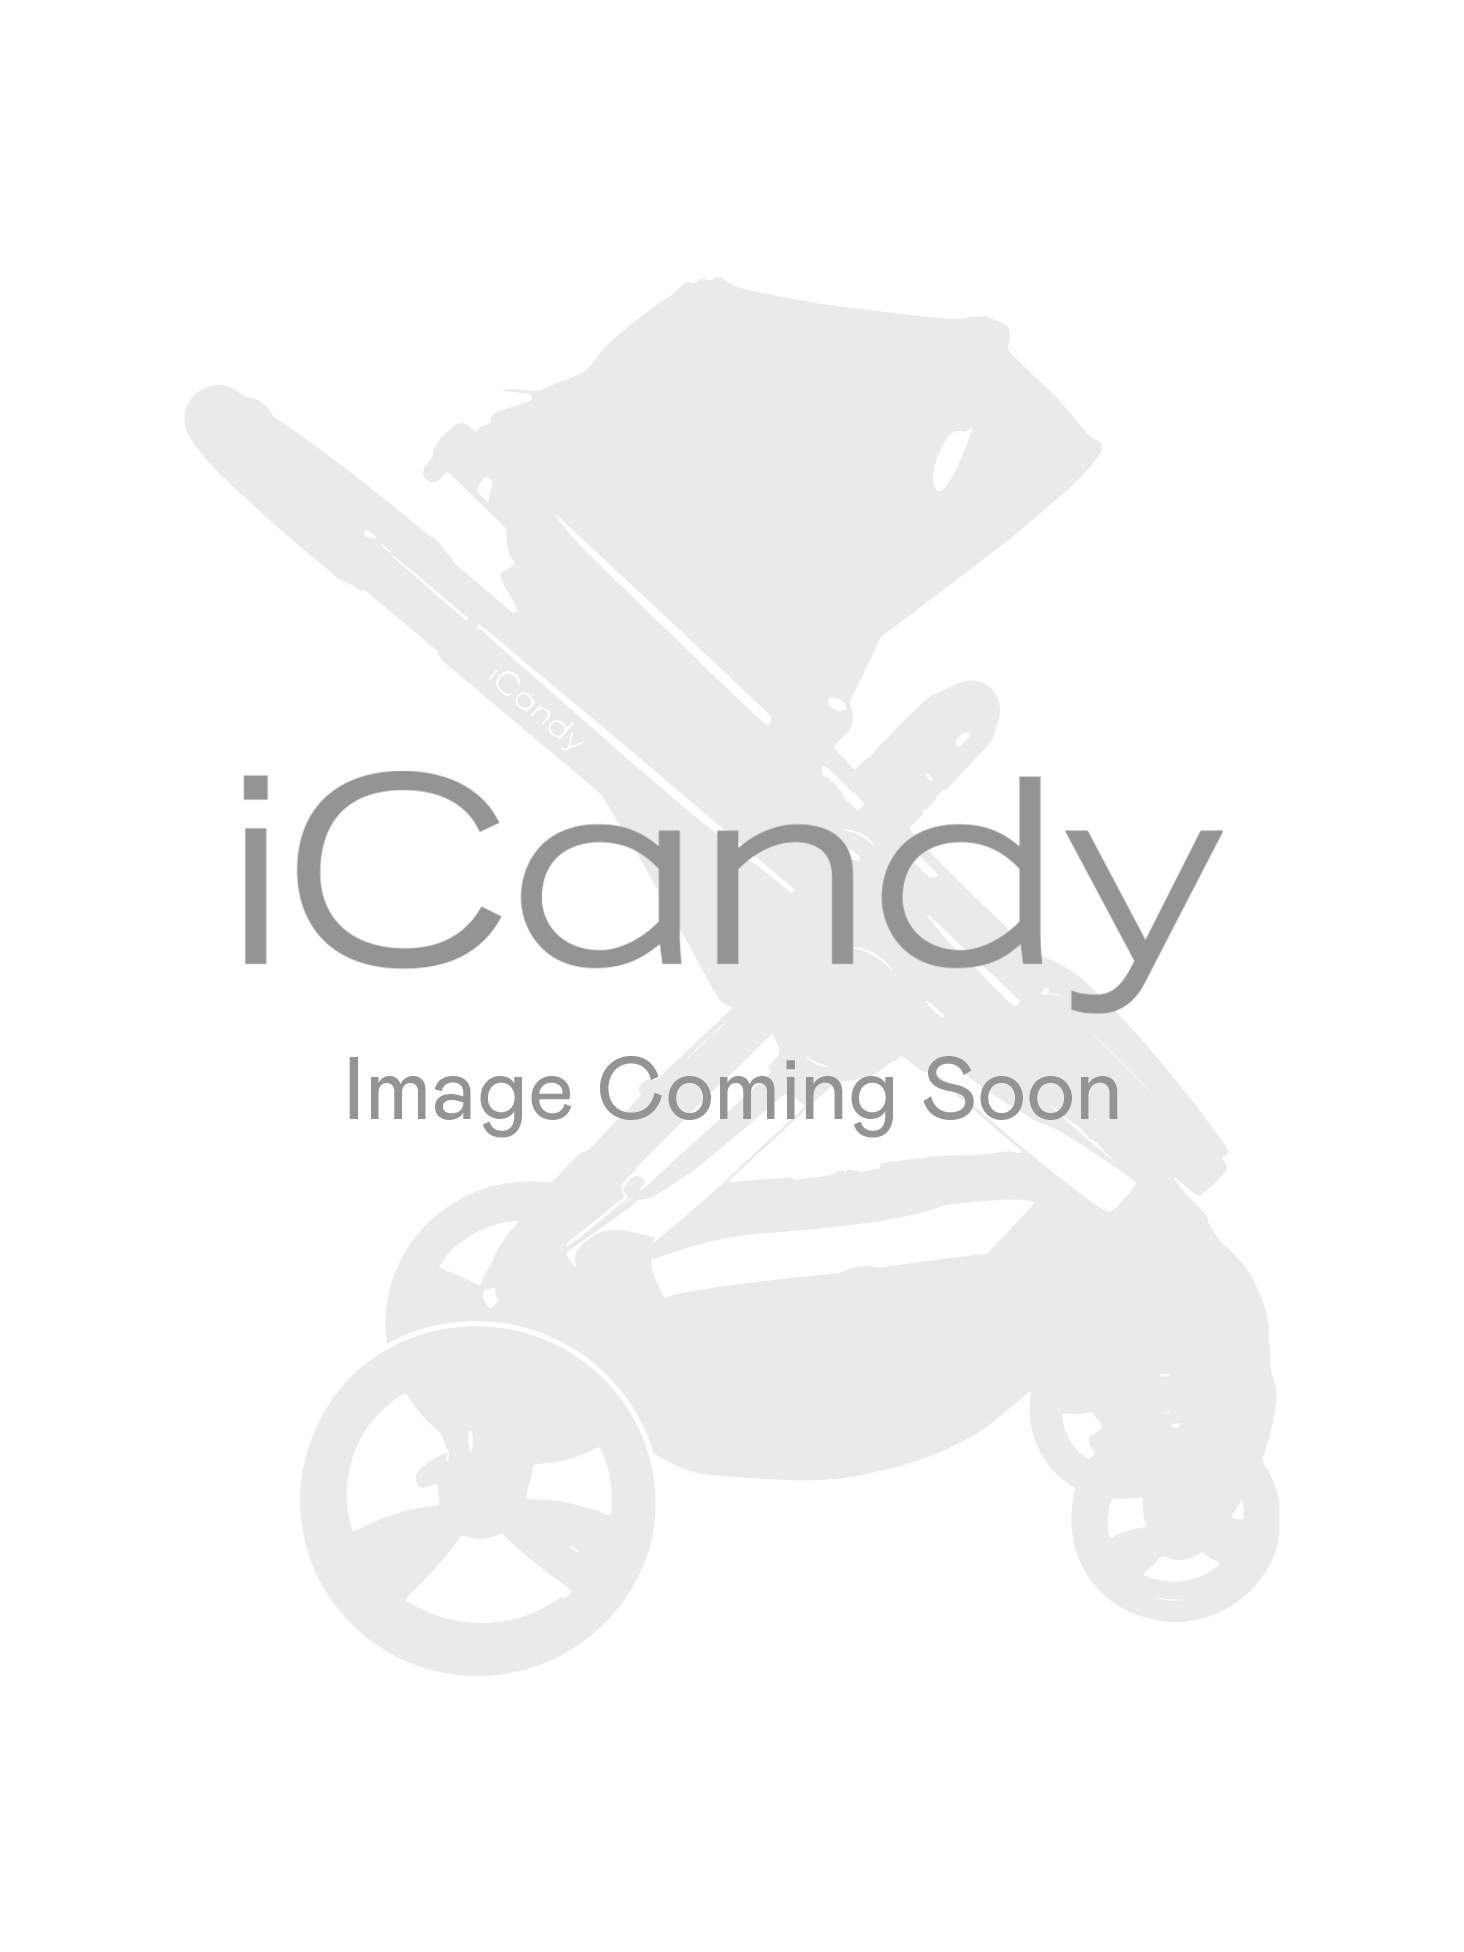 iCandy for Land Rover Front Wheel